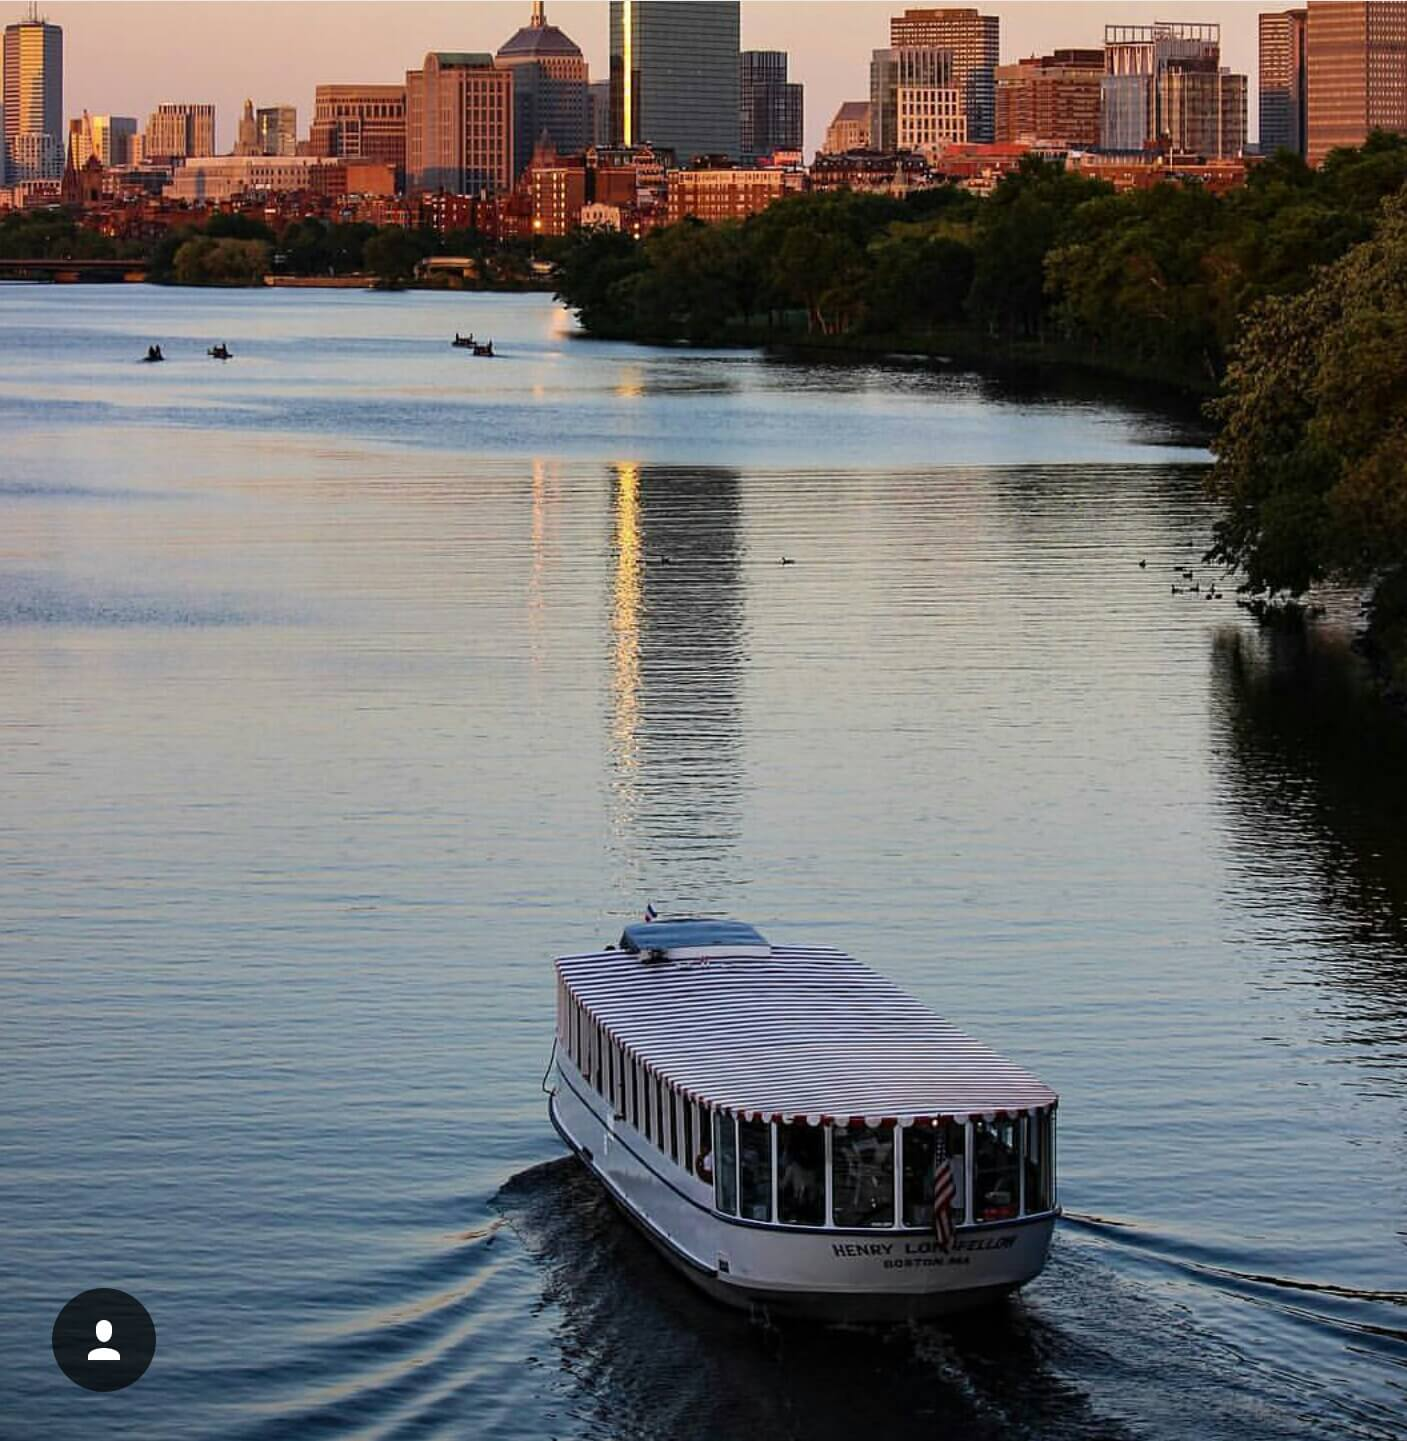 a charles riverboat vessel cruising into boston